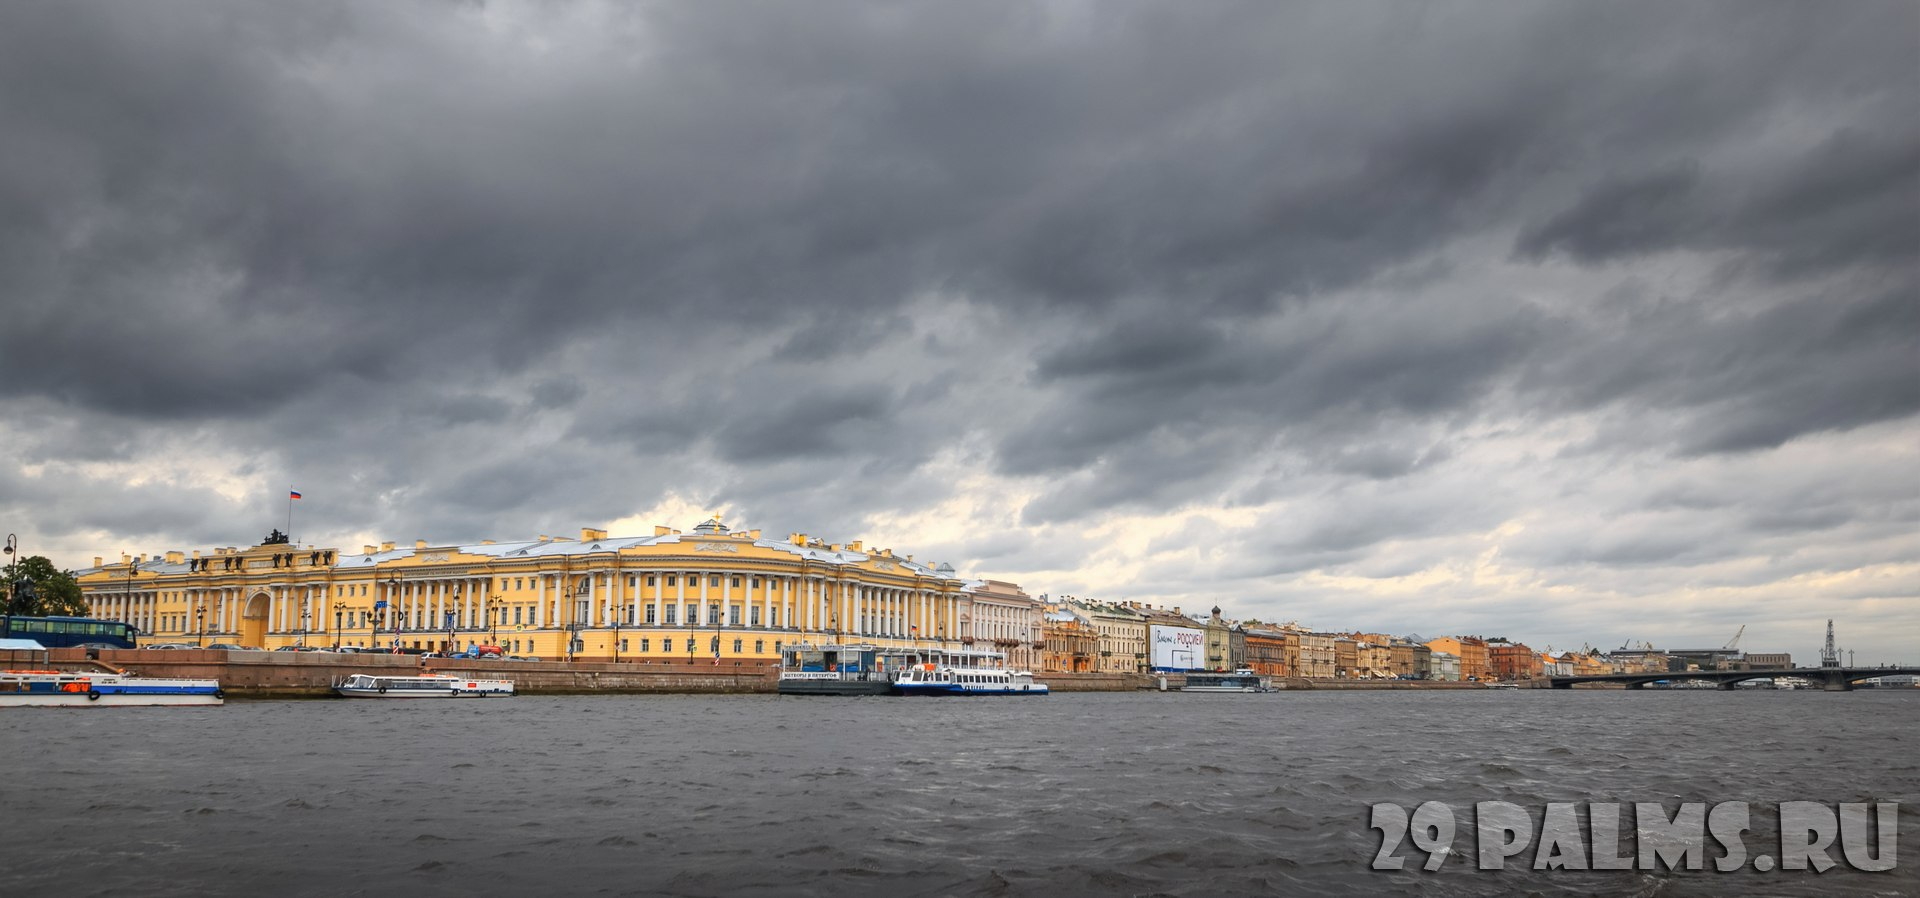 Россия. Санкт-Петербург. Здания Сената и Синода. Senate and Synod buildings. Saint Petersburg. Russia. Фото makALEX - Depositphotos